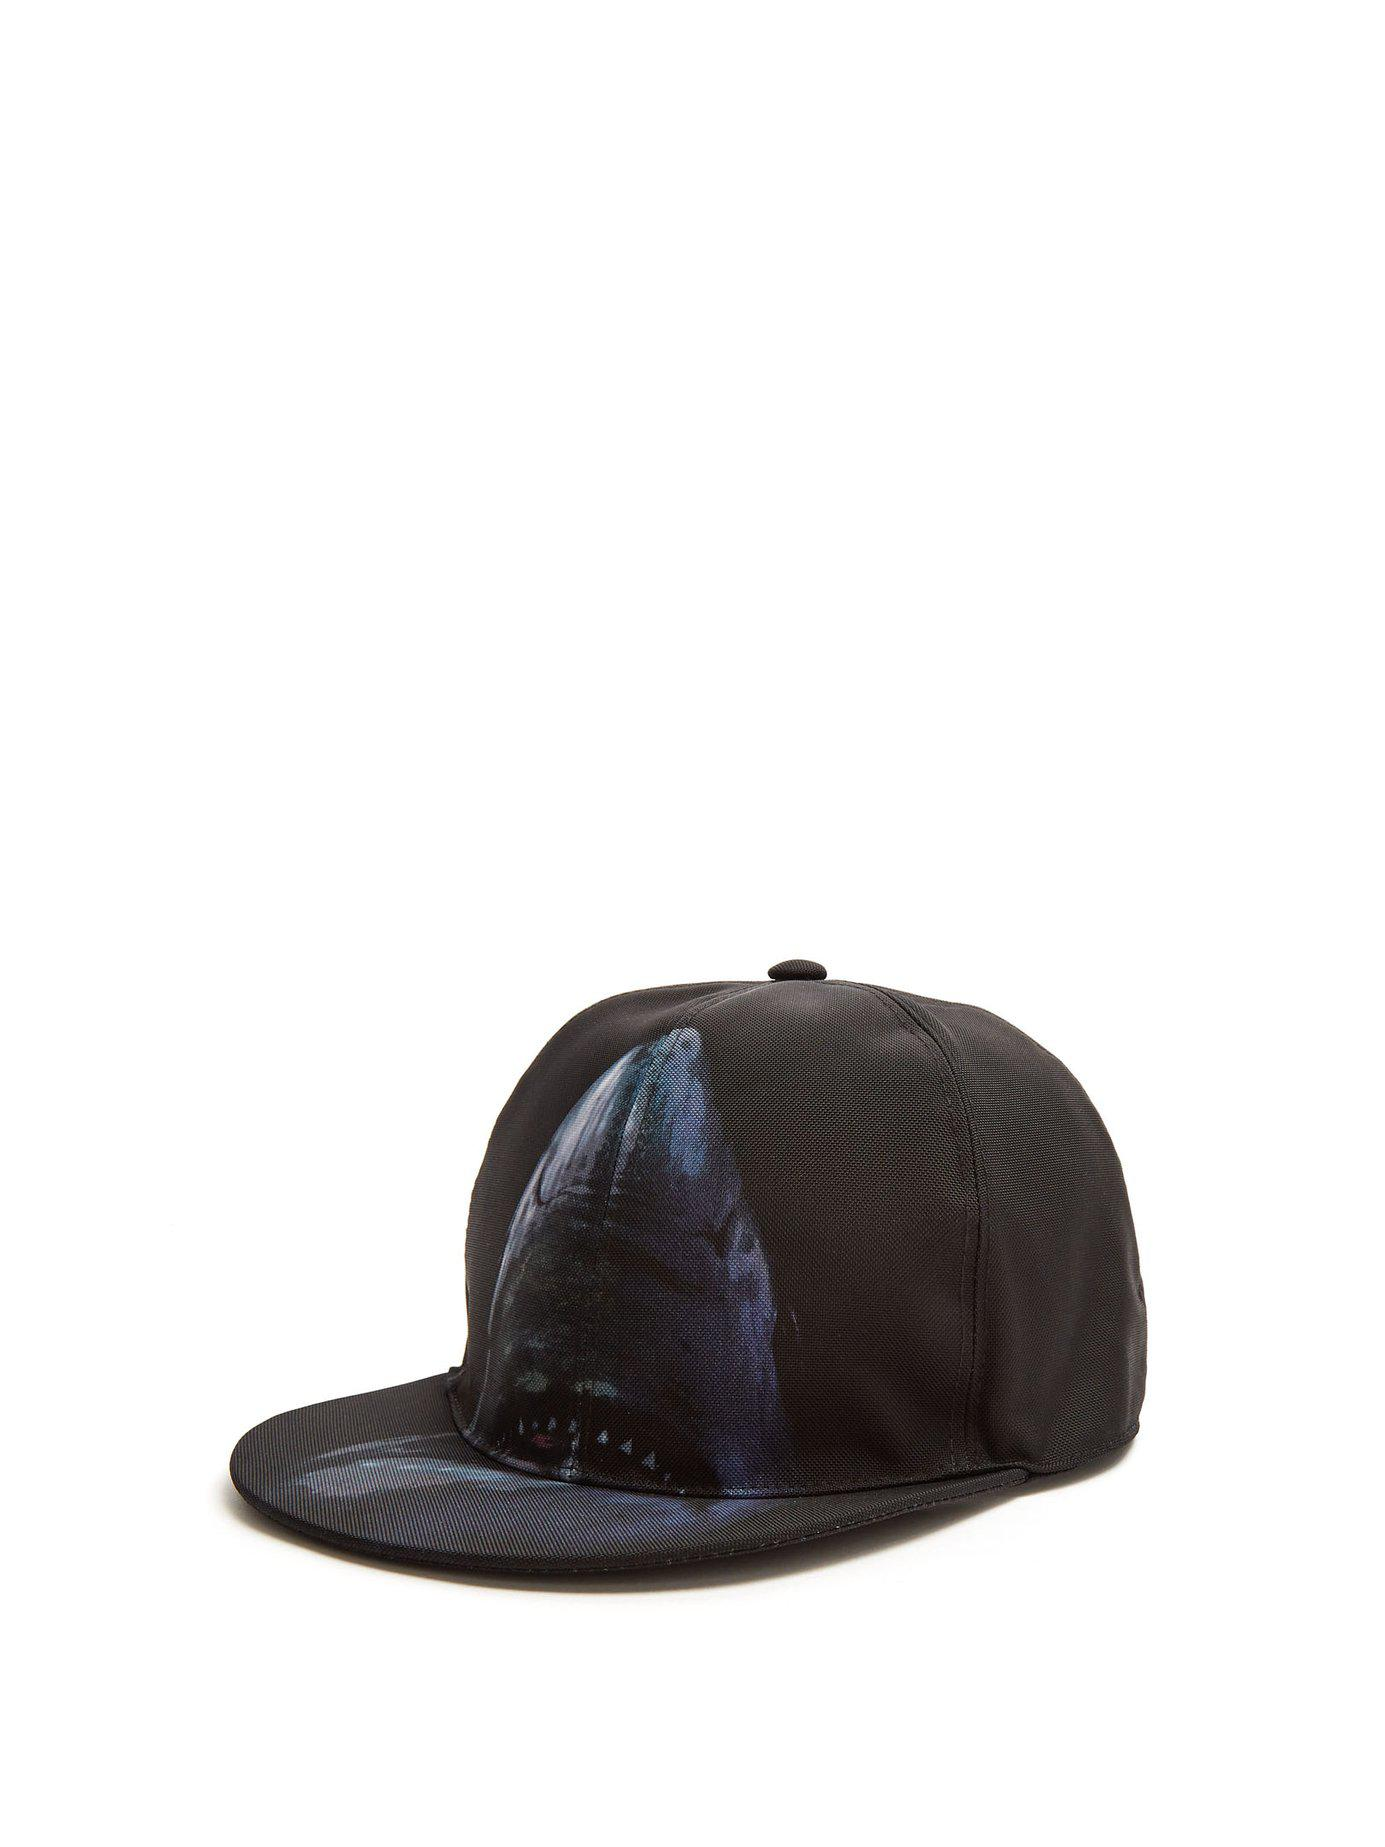 Lyst - Givenchy Shark Print Panel Cap in Black for Men - Save 75% 7caf18e28427